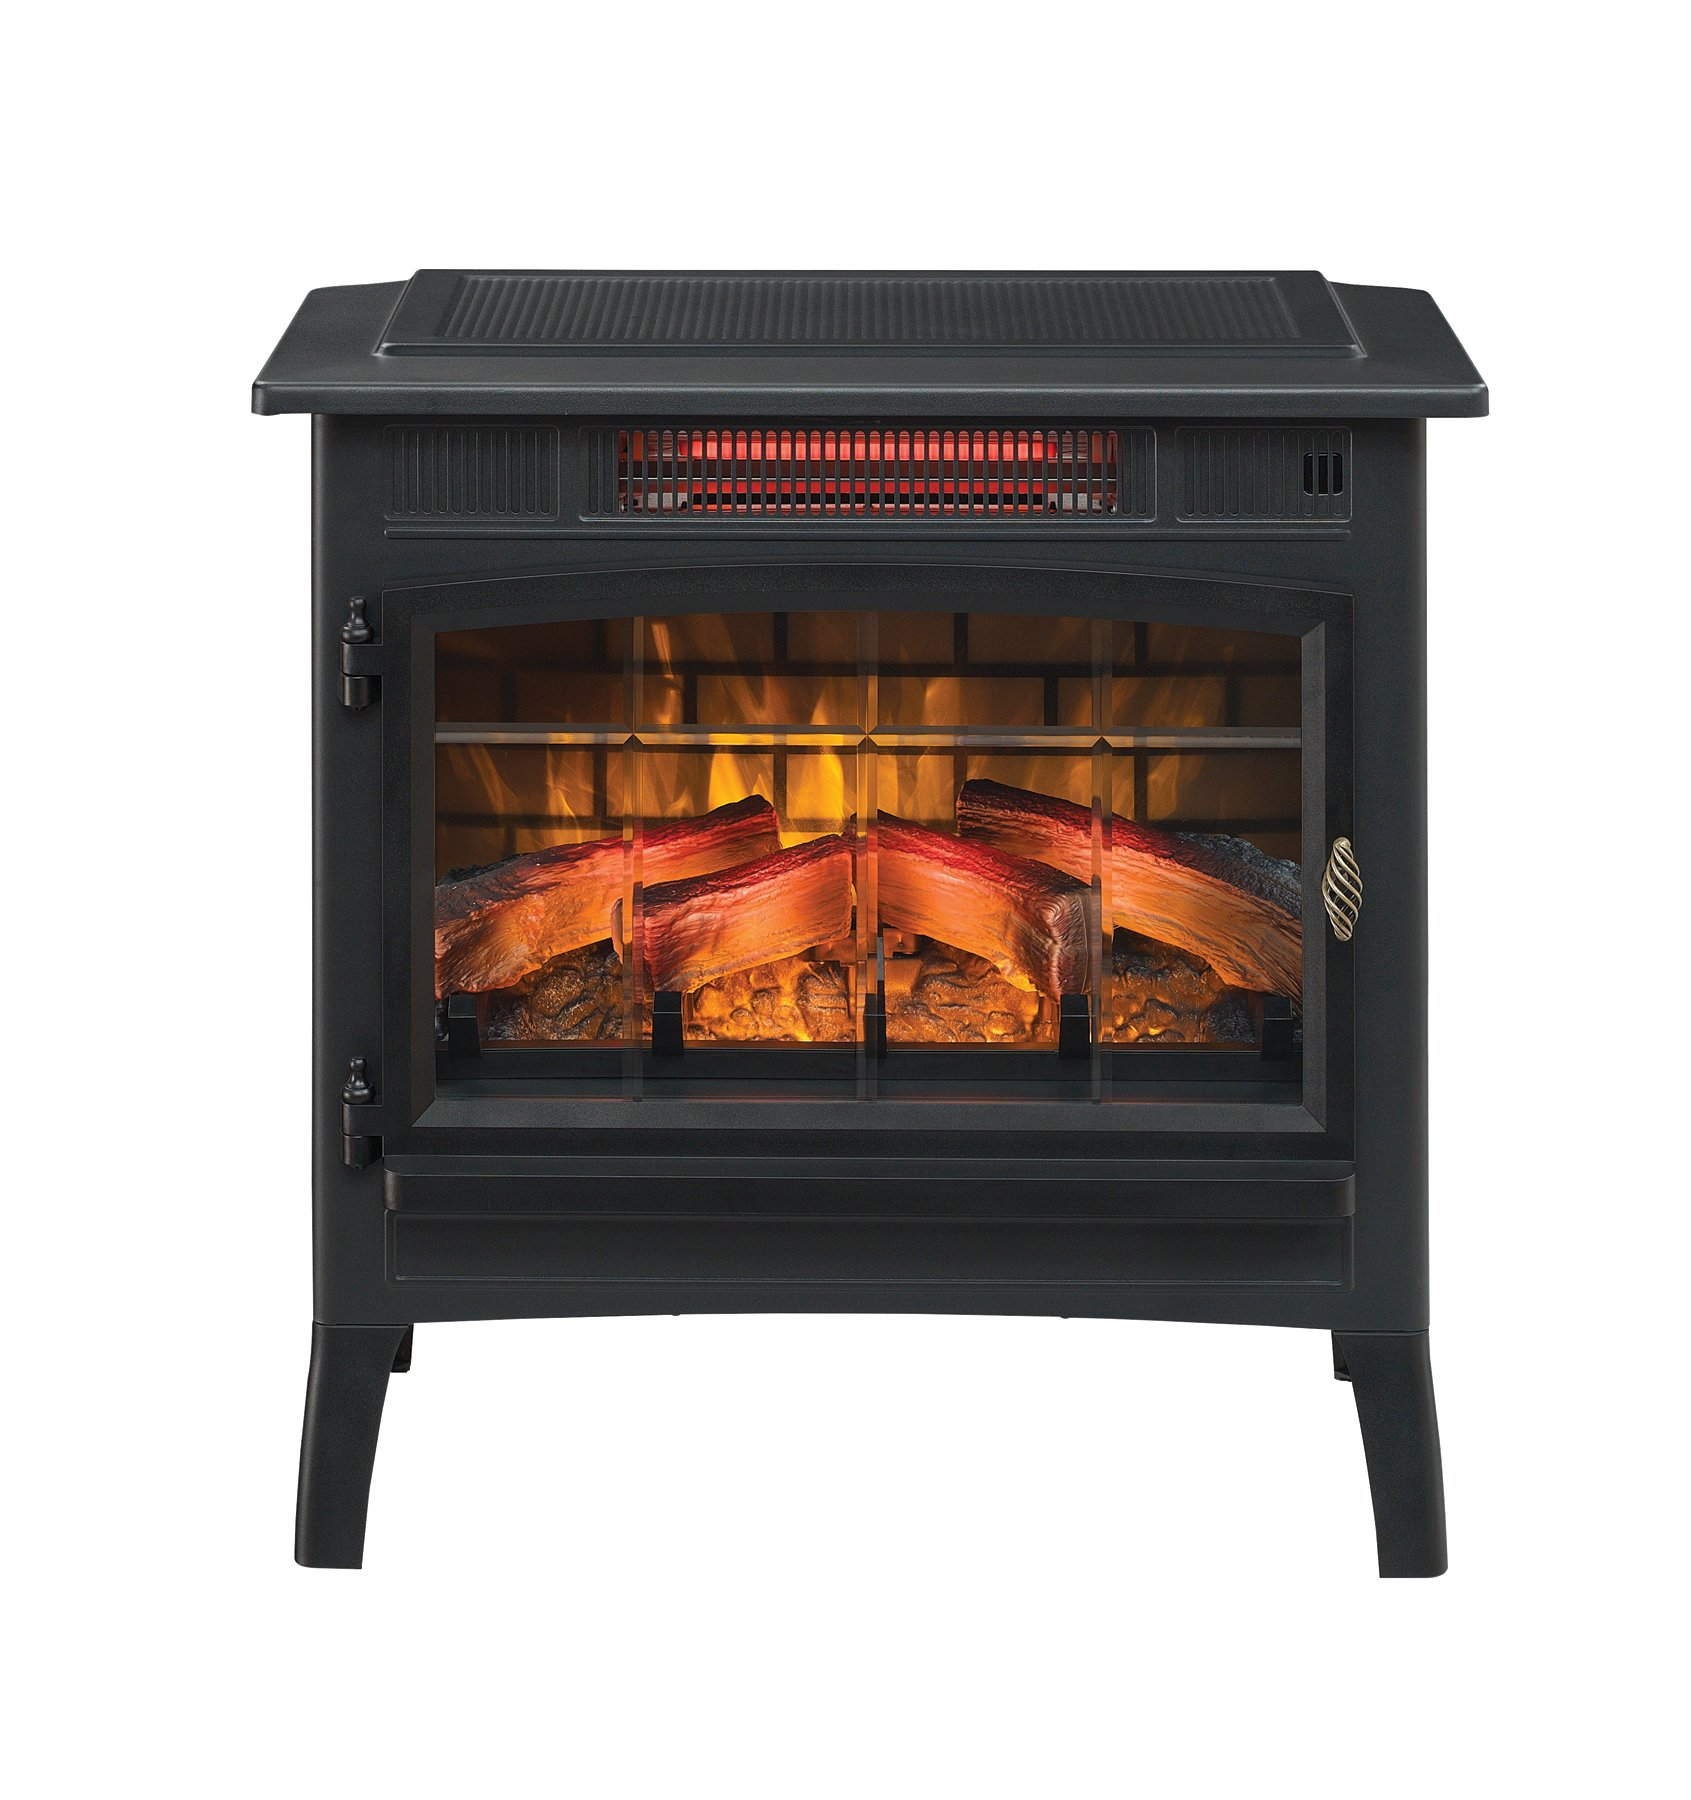 Find the highest rated products in our Electric Fireplace Stoves store